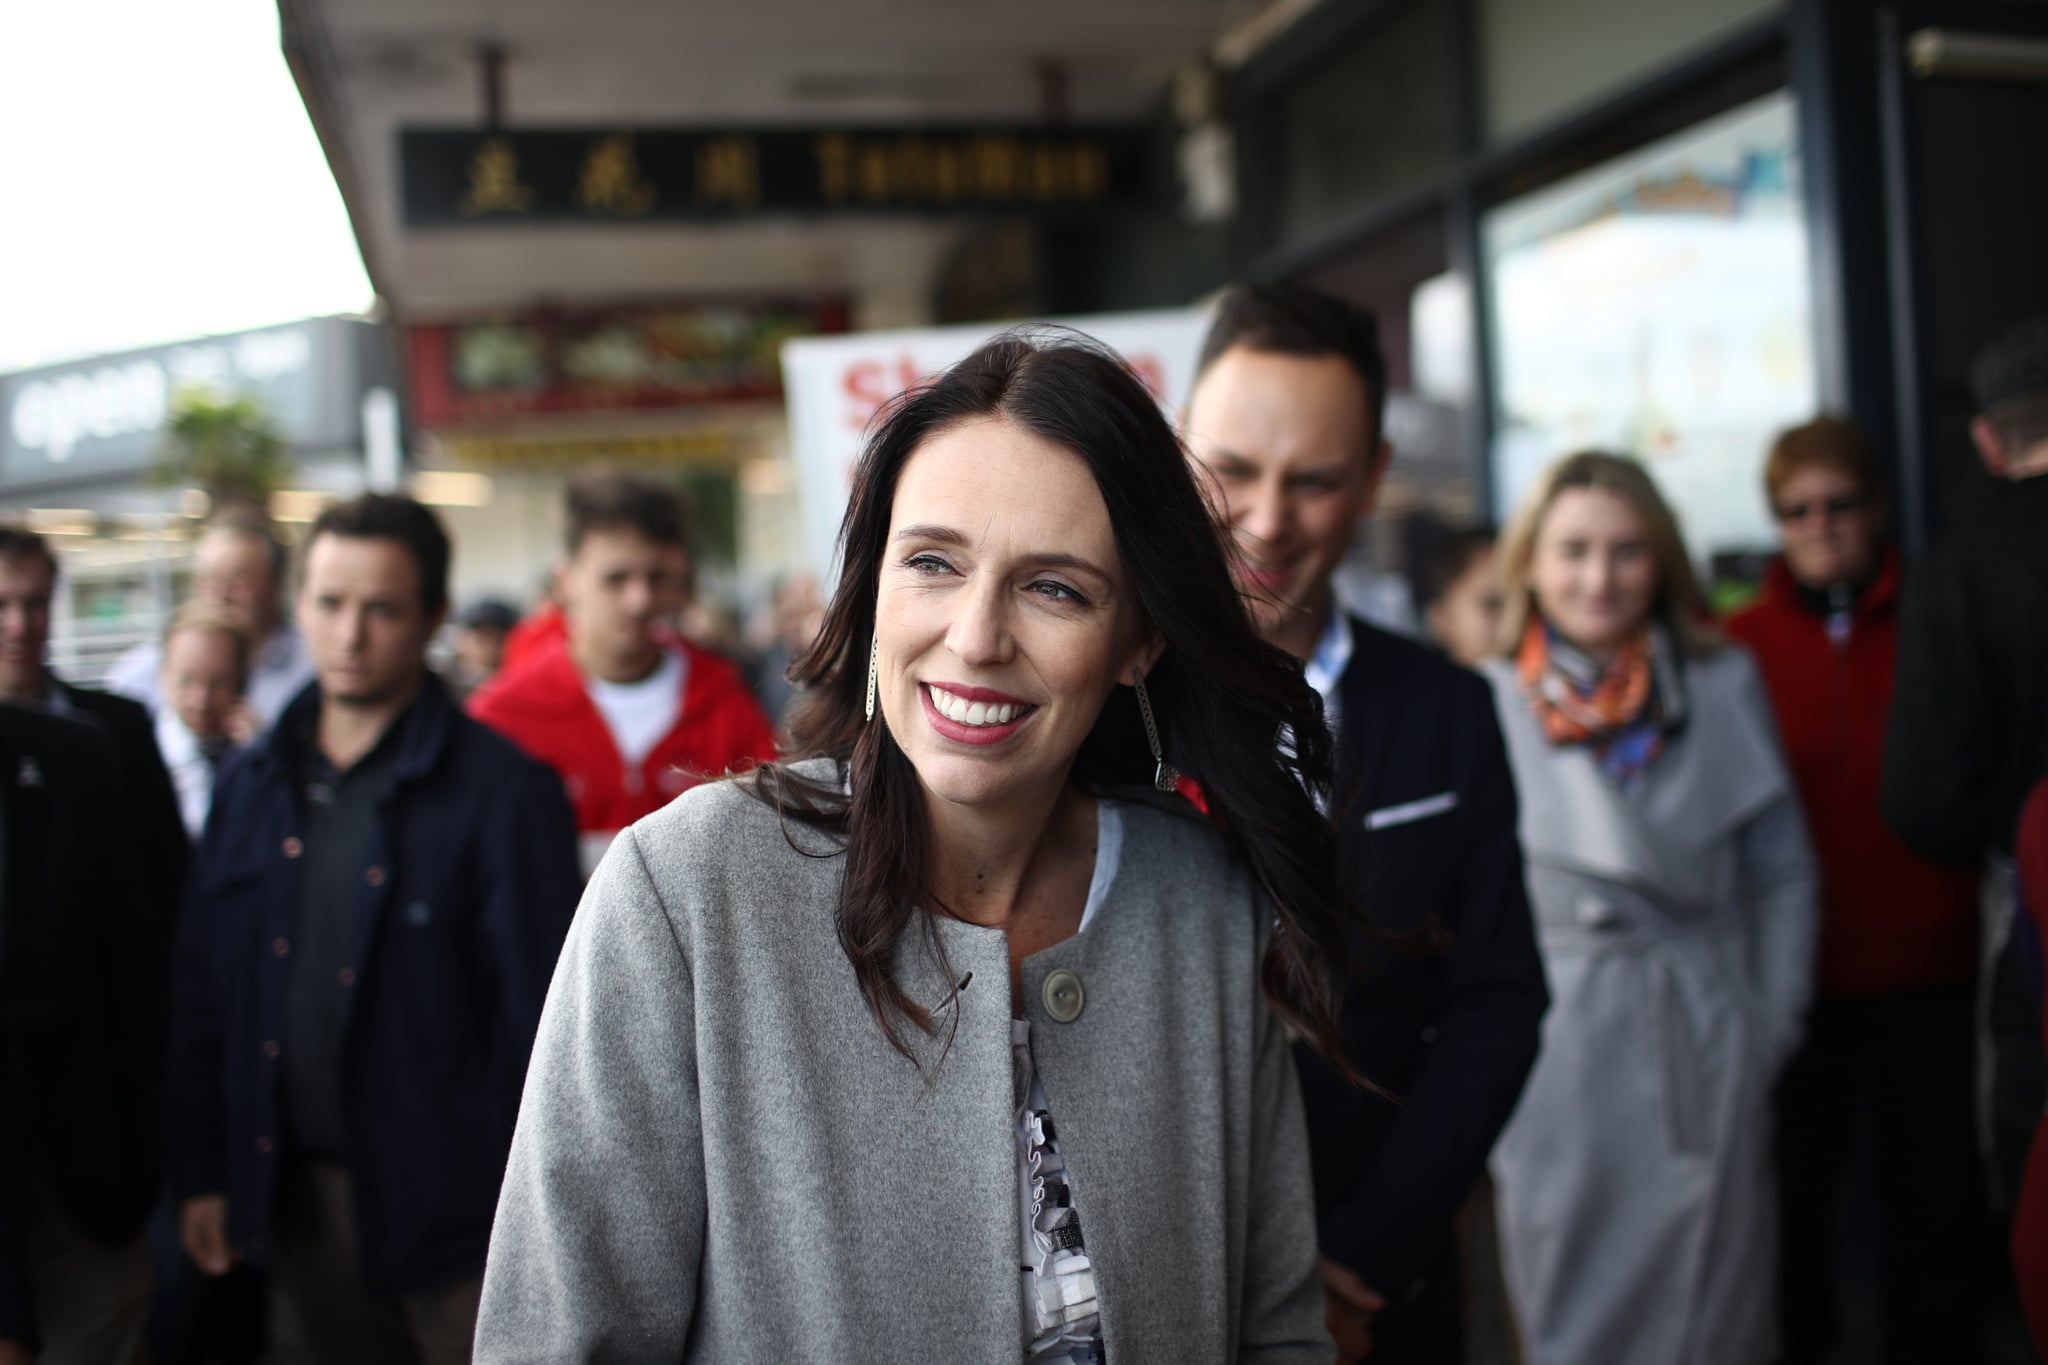 AUCKLAND, NEW ZEALAND - JUNE 07:  Prime Minister Jacinda Ardern and Northcote Labour candidate Shanan Halbert meet shoppers at the Northcote Shopping Centre on June 7, 2018 in Auckland, New Zealand. The Northcote by-election will be held on Saturday 9 June. The seat became vacant on 15 April 2018, following the resignation of Jonathan Coleman.  (Photo by Phil Walter/Getty Images)